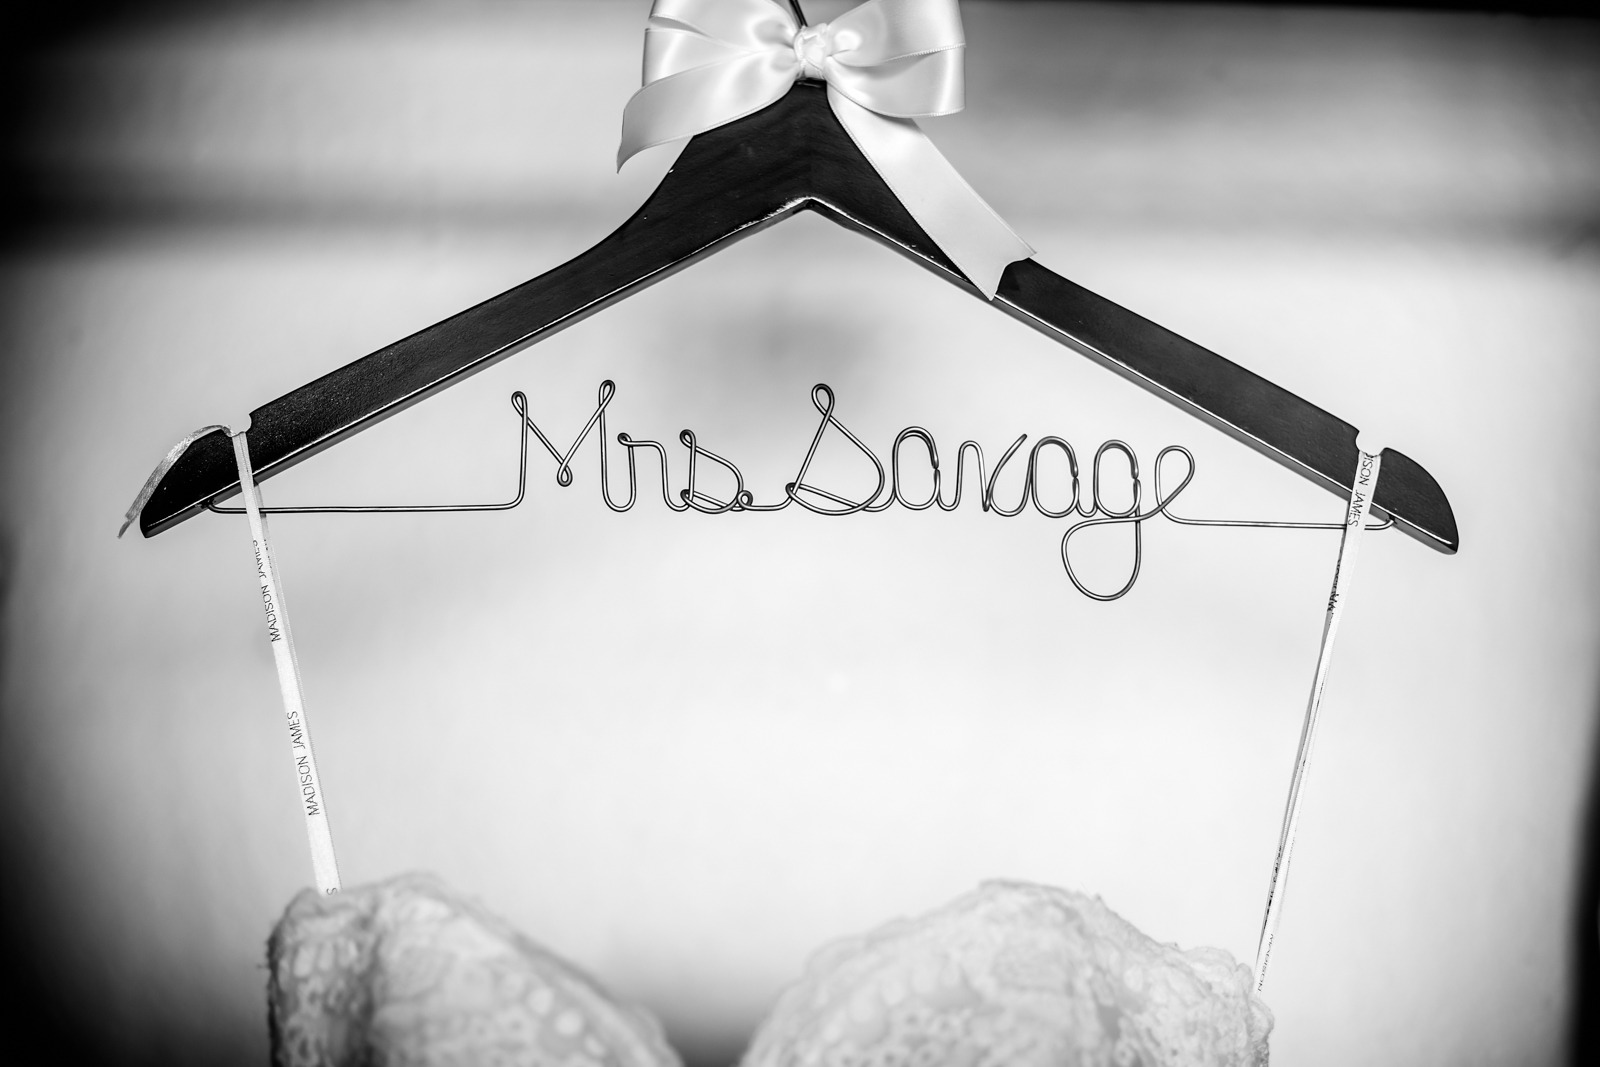 details-wedding-dress-name-mrs-wedding day-beach wedding